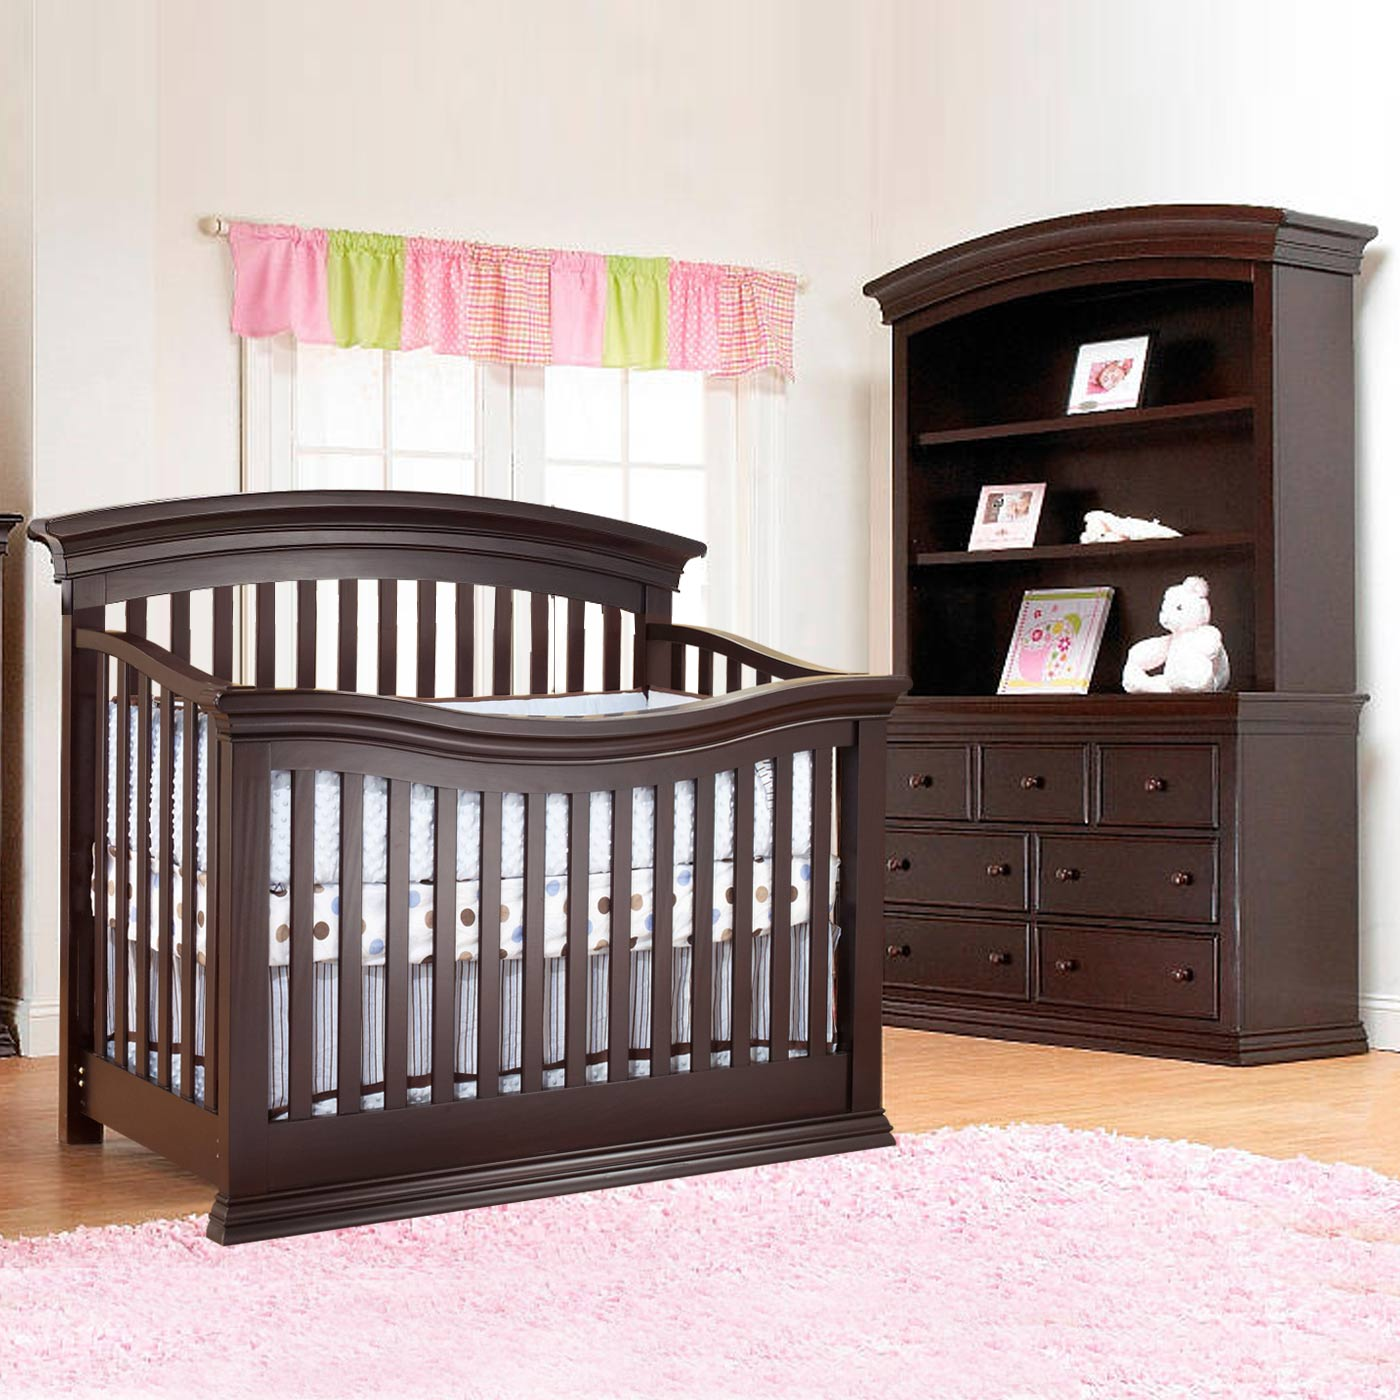 sorelle verona 3 piece nursery set 4 in 1 convertible crib double dresser and hutch in espresso free shipping